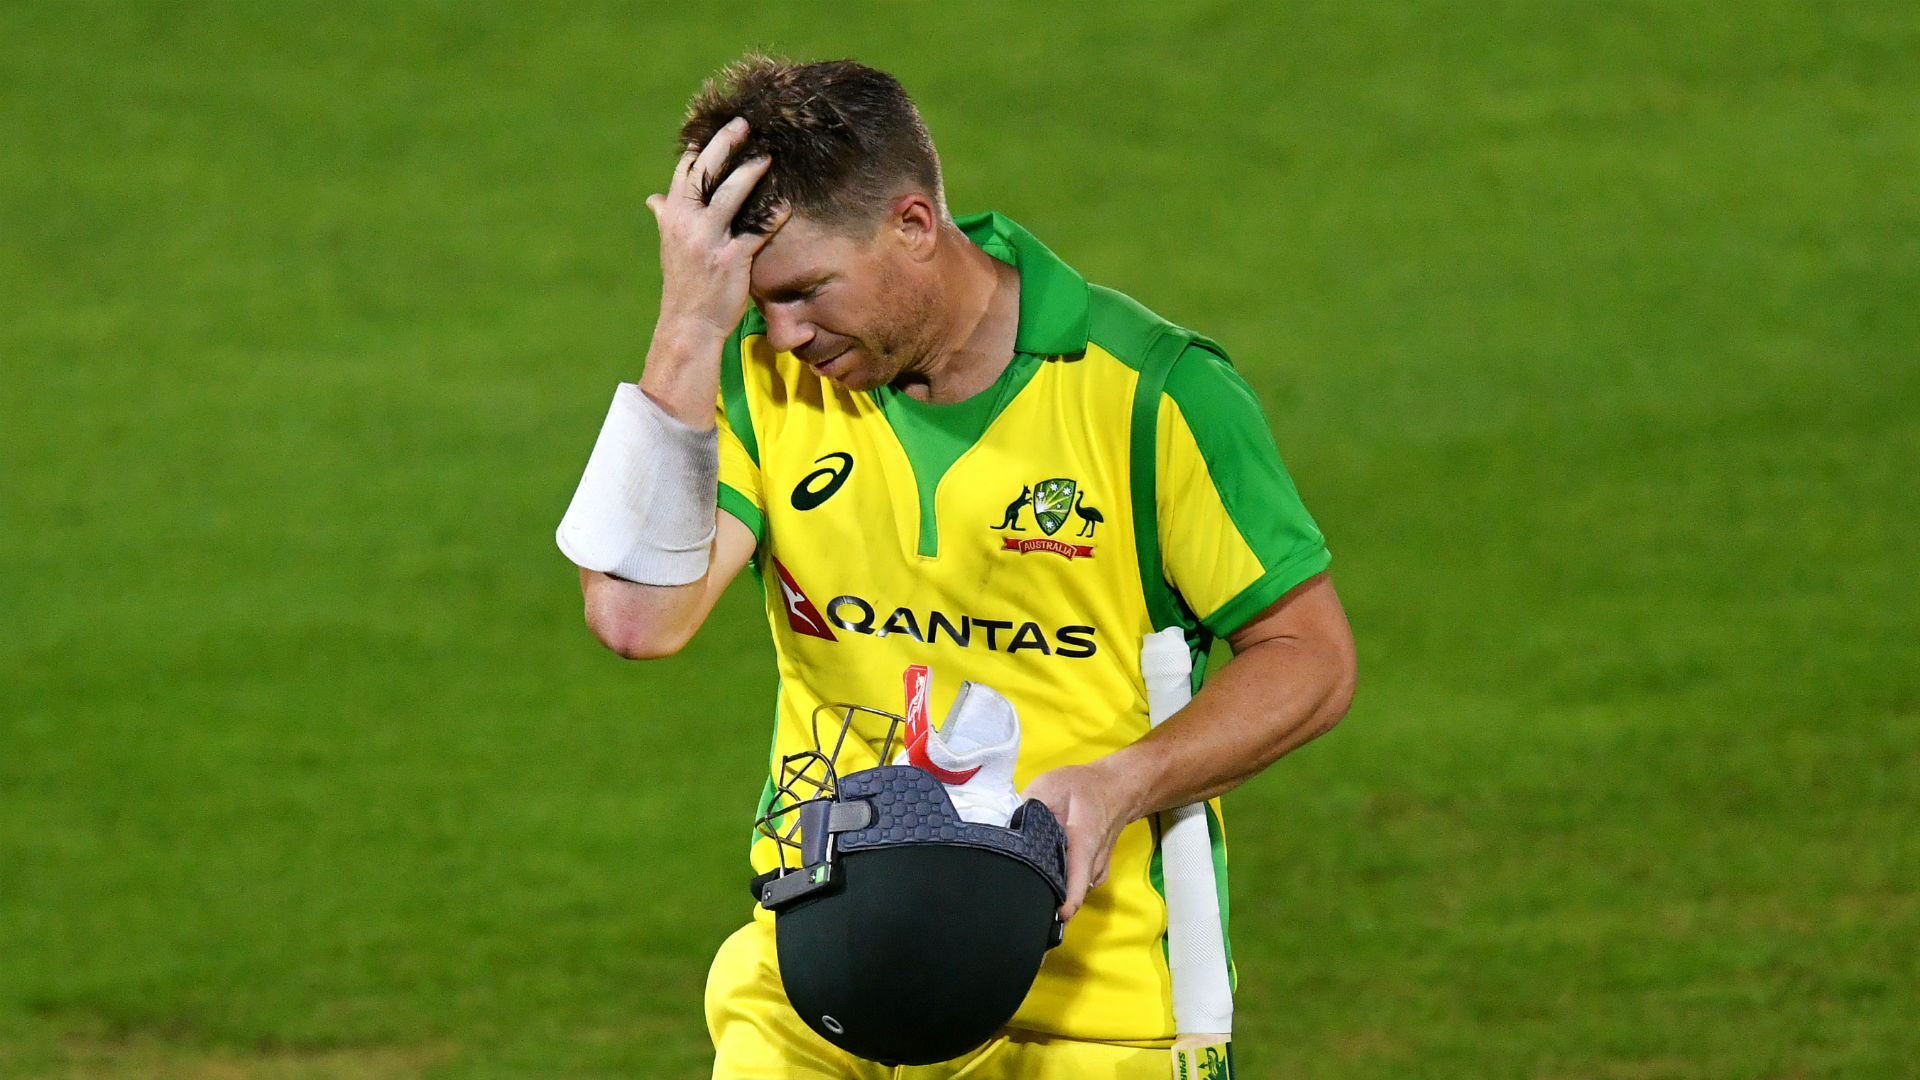 Warner offers no excuses after Australia batting collapse